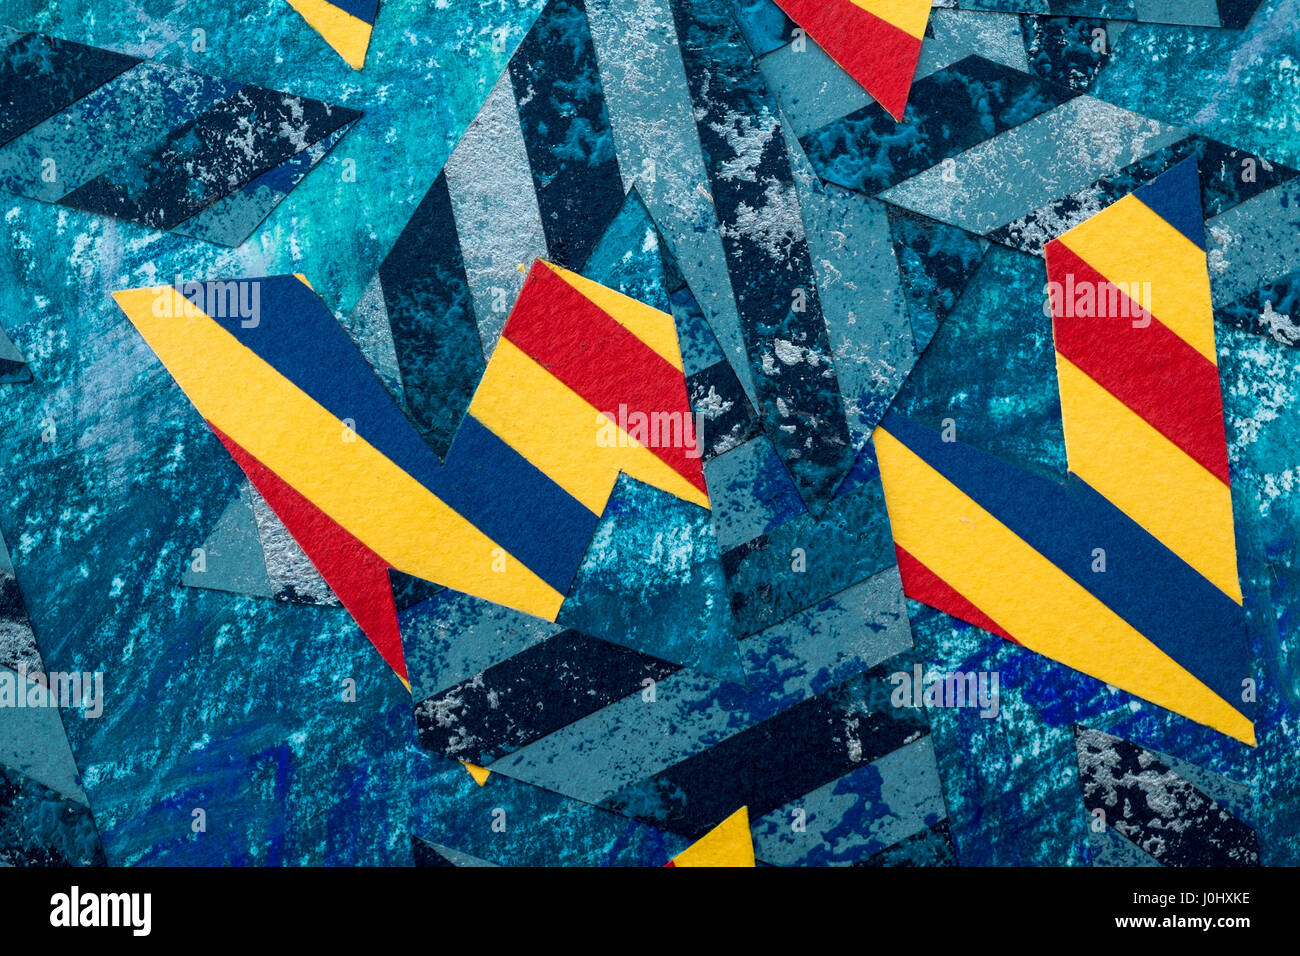 Modern abstract artwork by Ed Buziak. Stock Photo